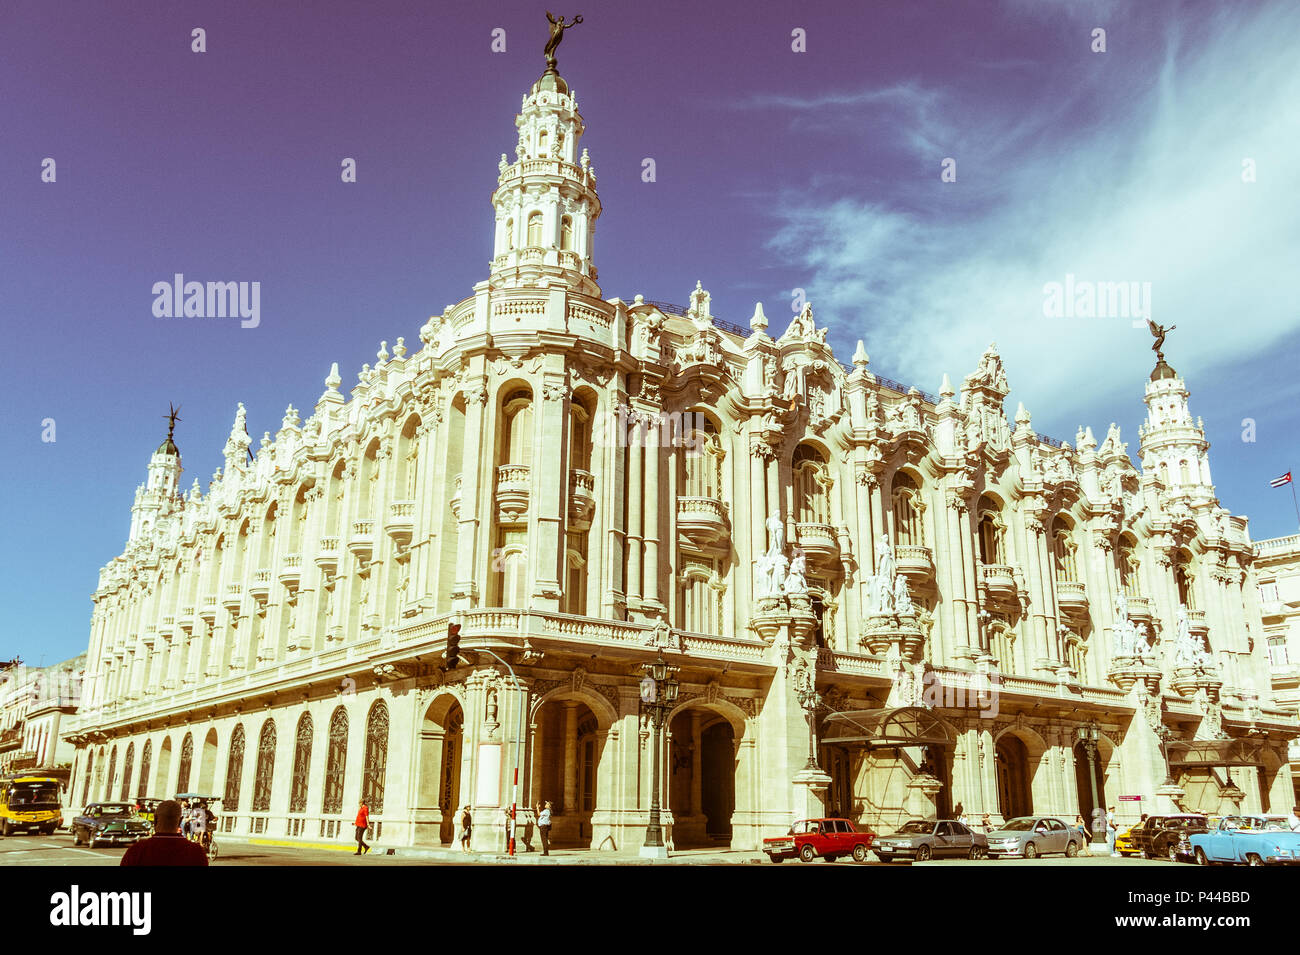 HAVANA, CUBA - JANUARY 16, 2017: Great Theatre of Havana Alicia Alonso in Cuba. Famous theater in Cuba. Image with vintage and yesteryear effect - Stock Image